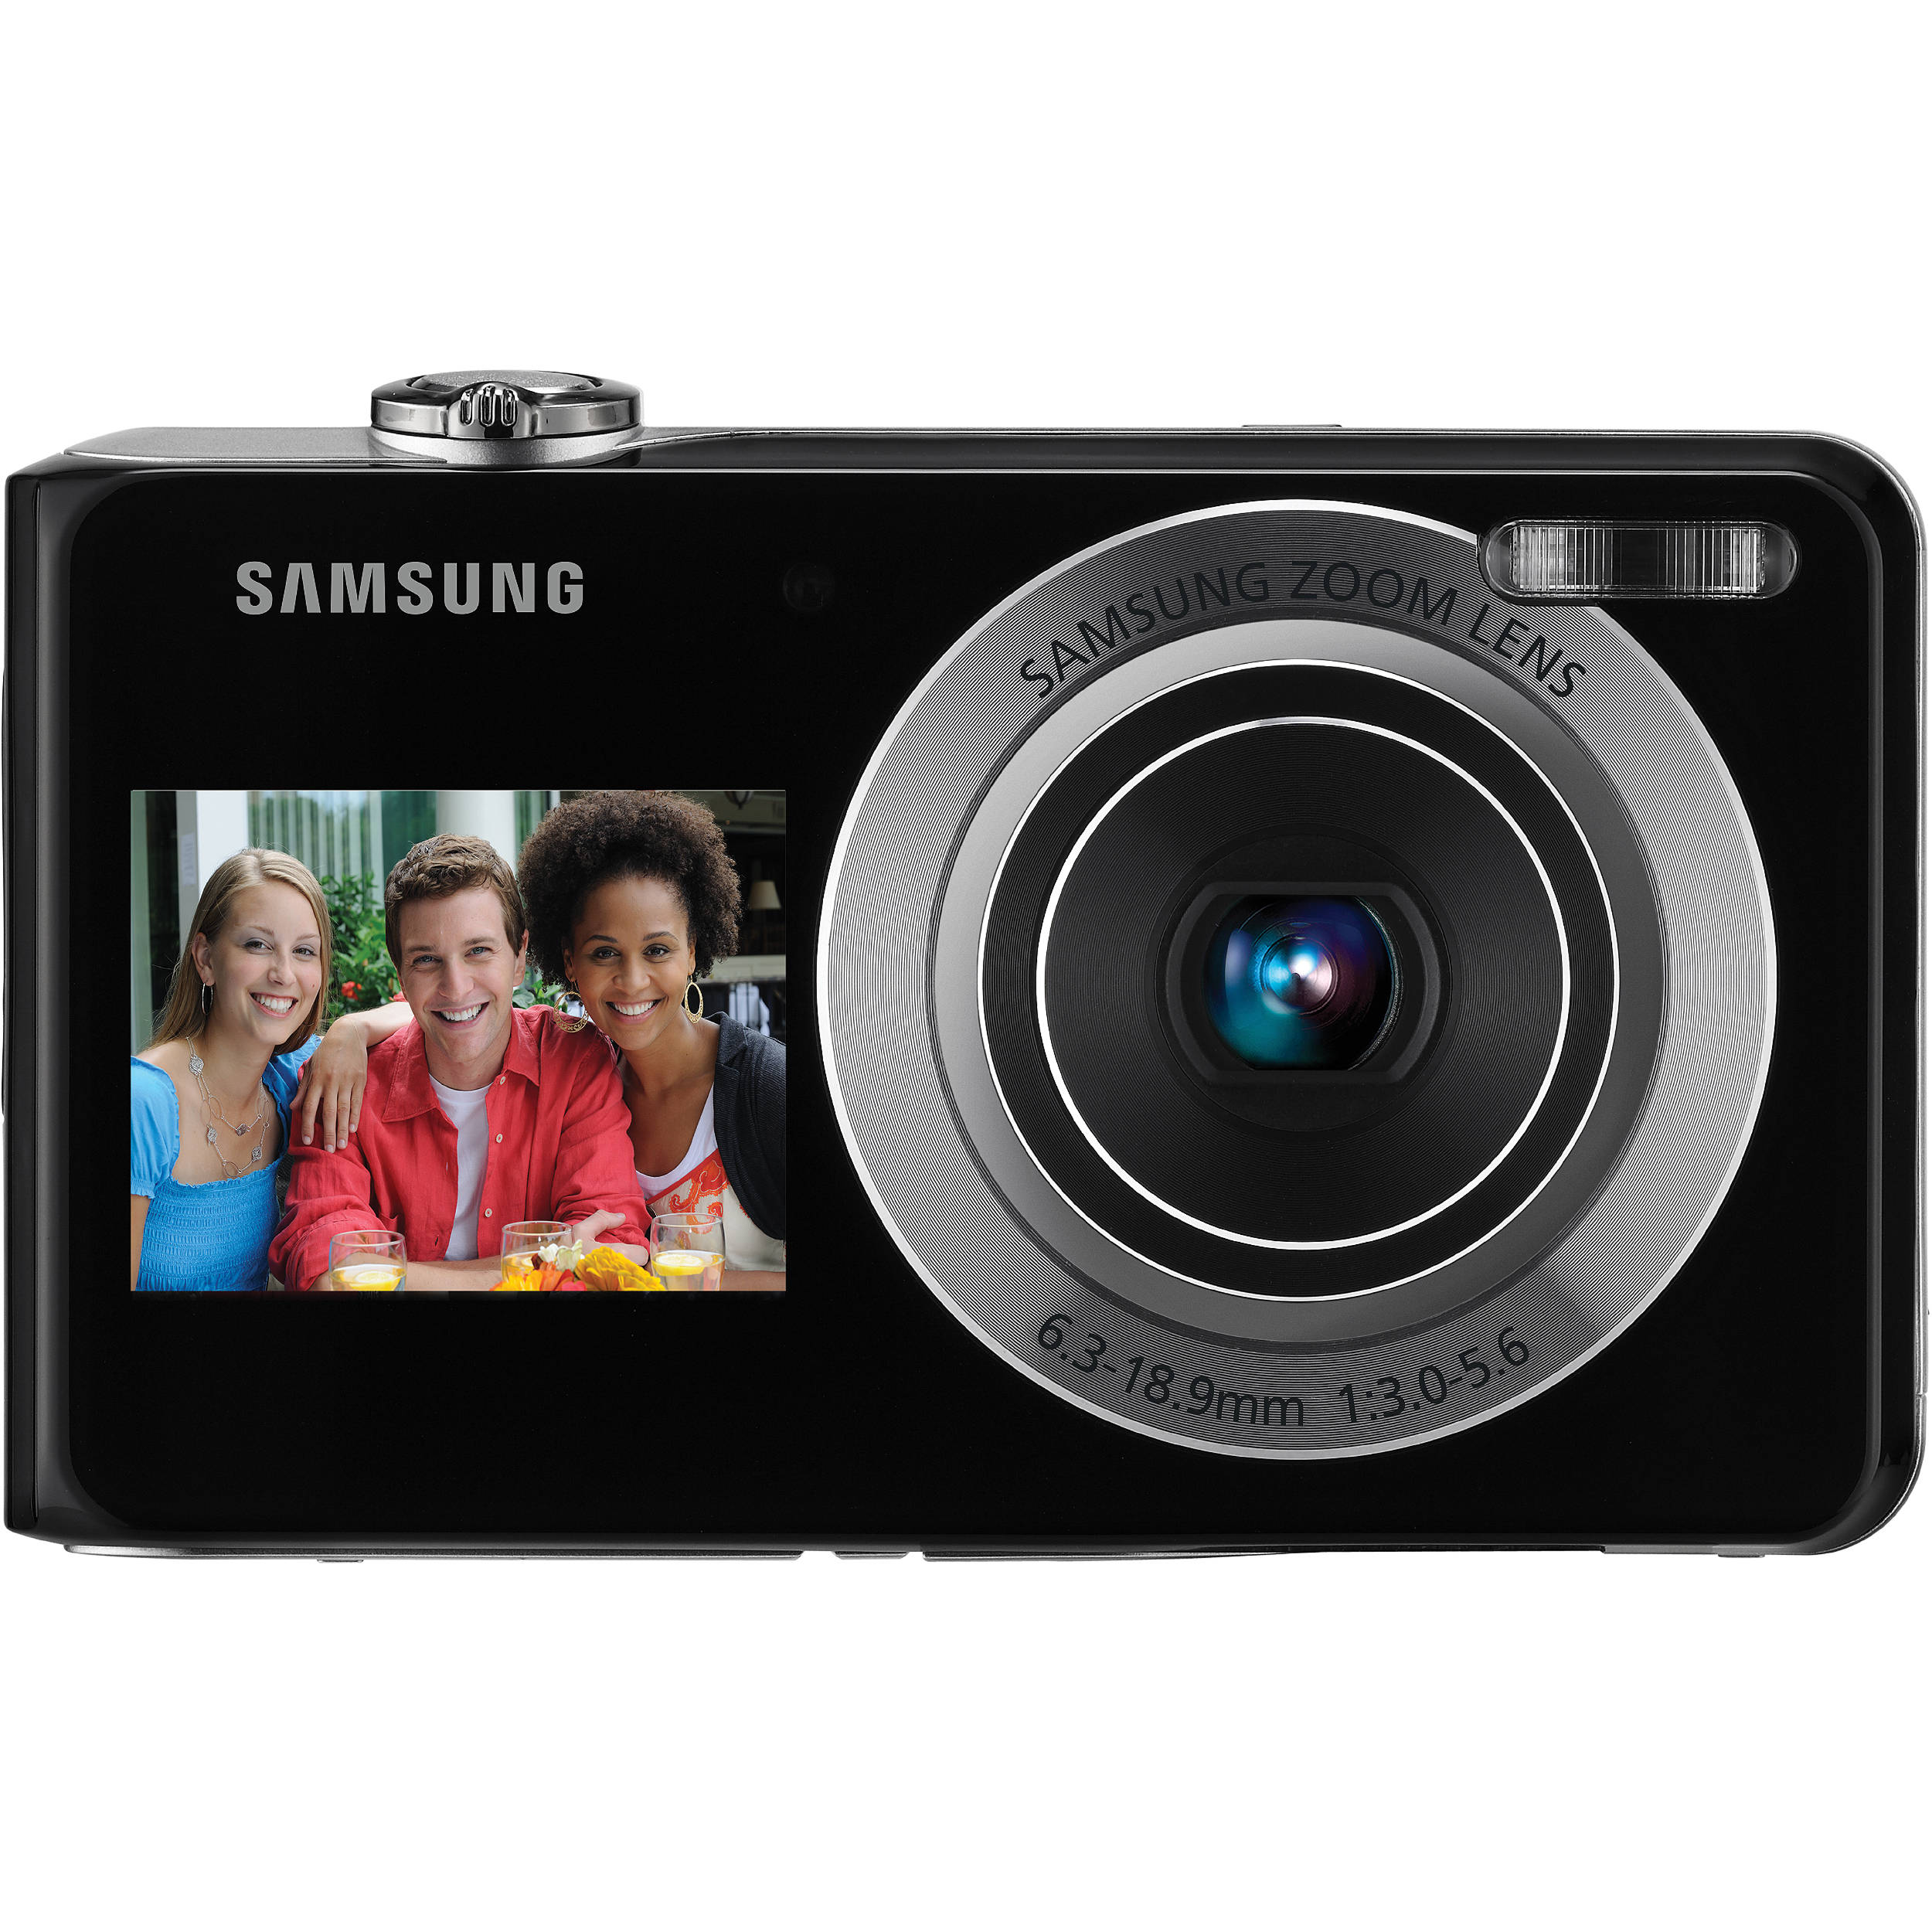 samsung tl205 dualview digital camera silver ec tl205zbpsus rh bhphotovideo com Samsung TL205 Camera Charger Samsung TL205 Pickies How Many Are There